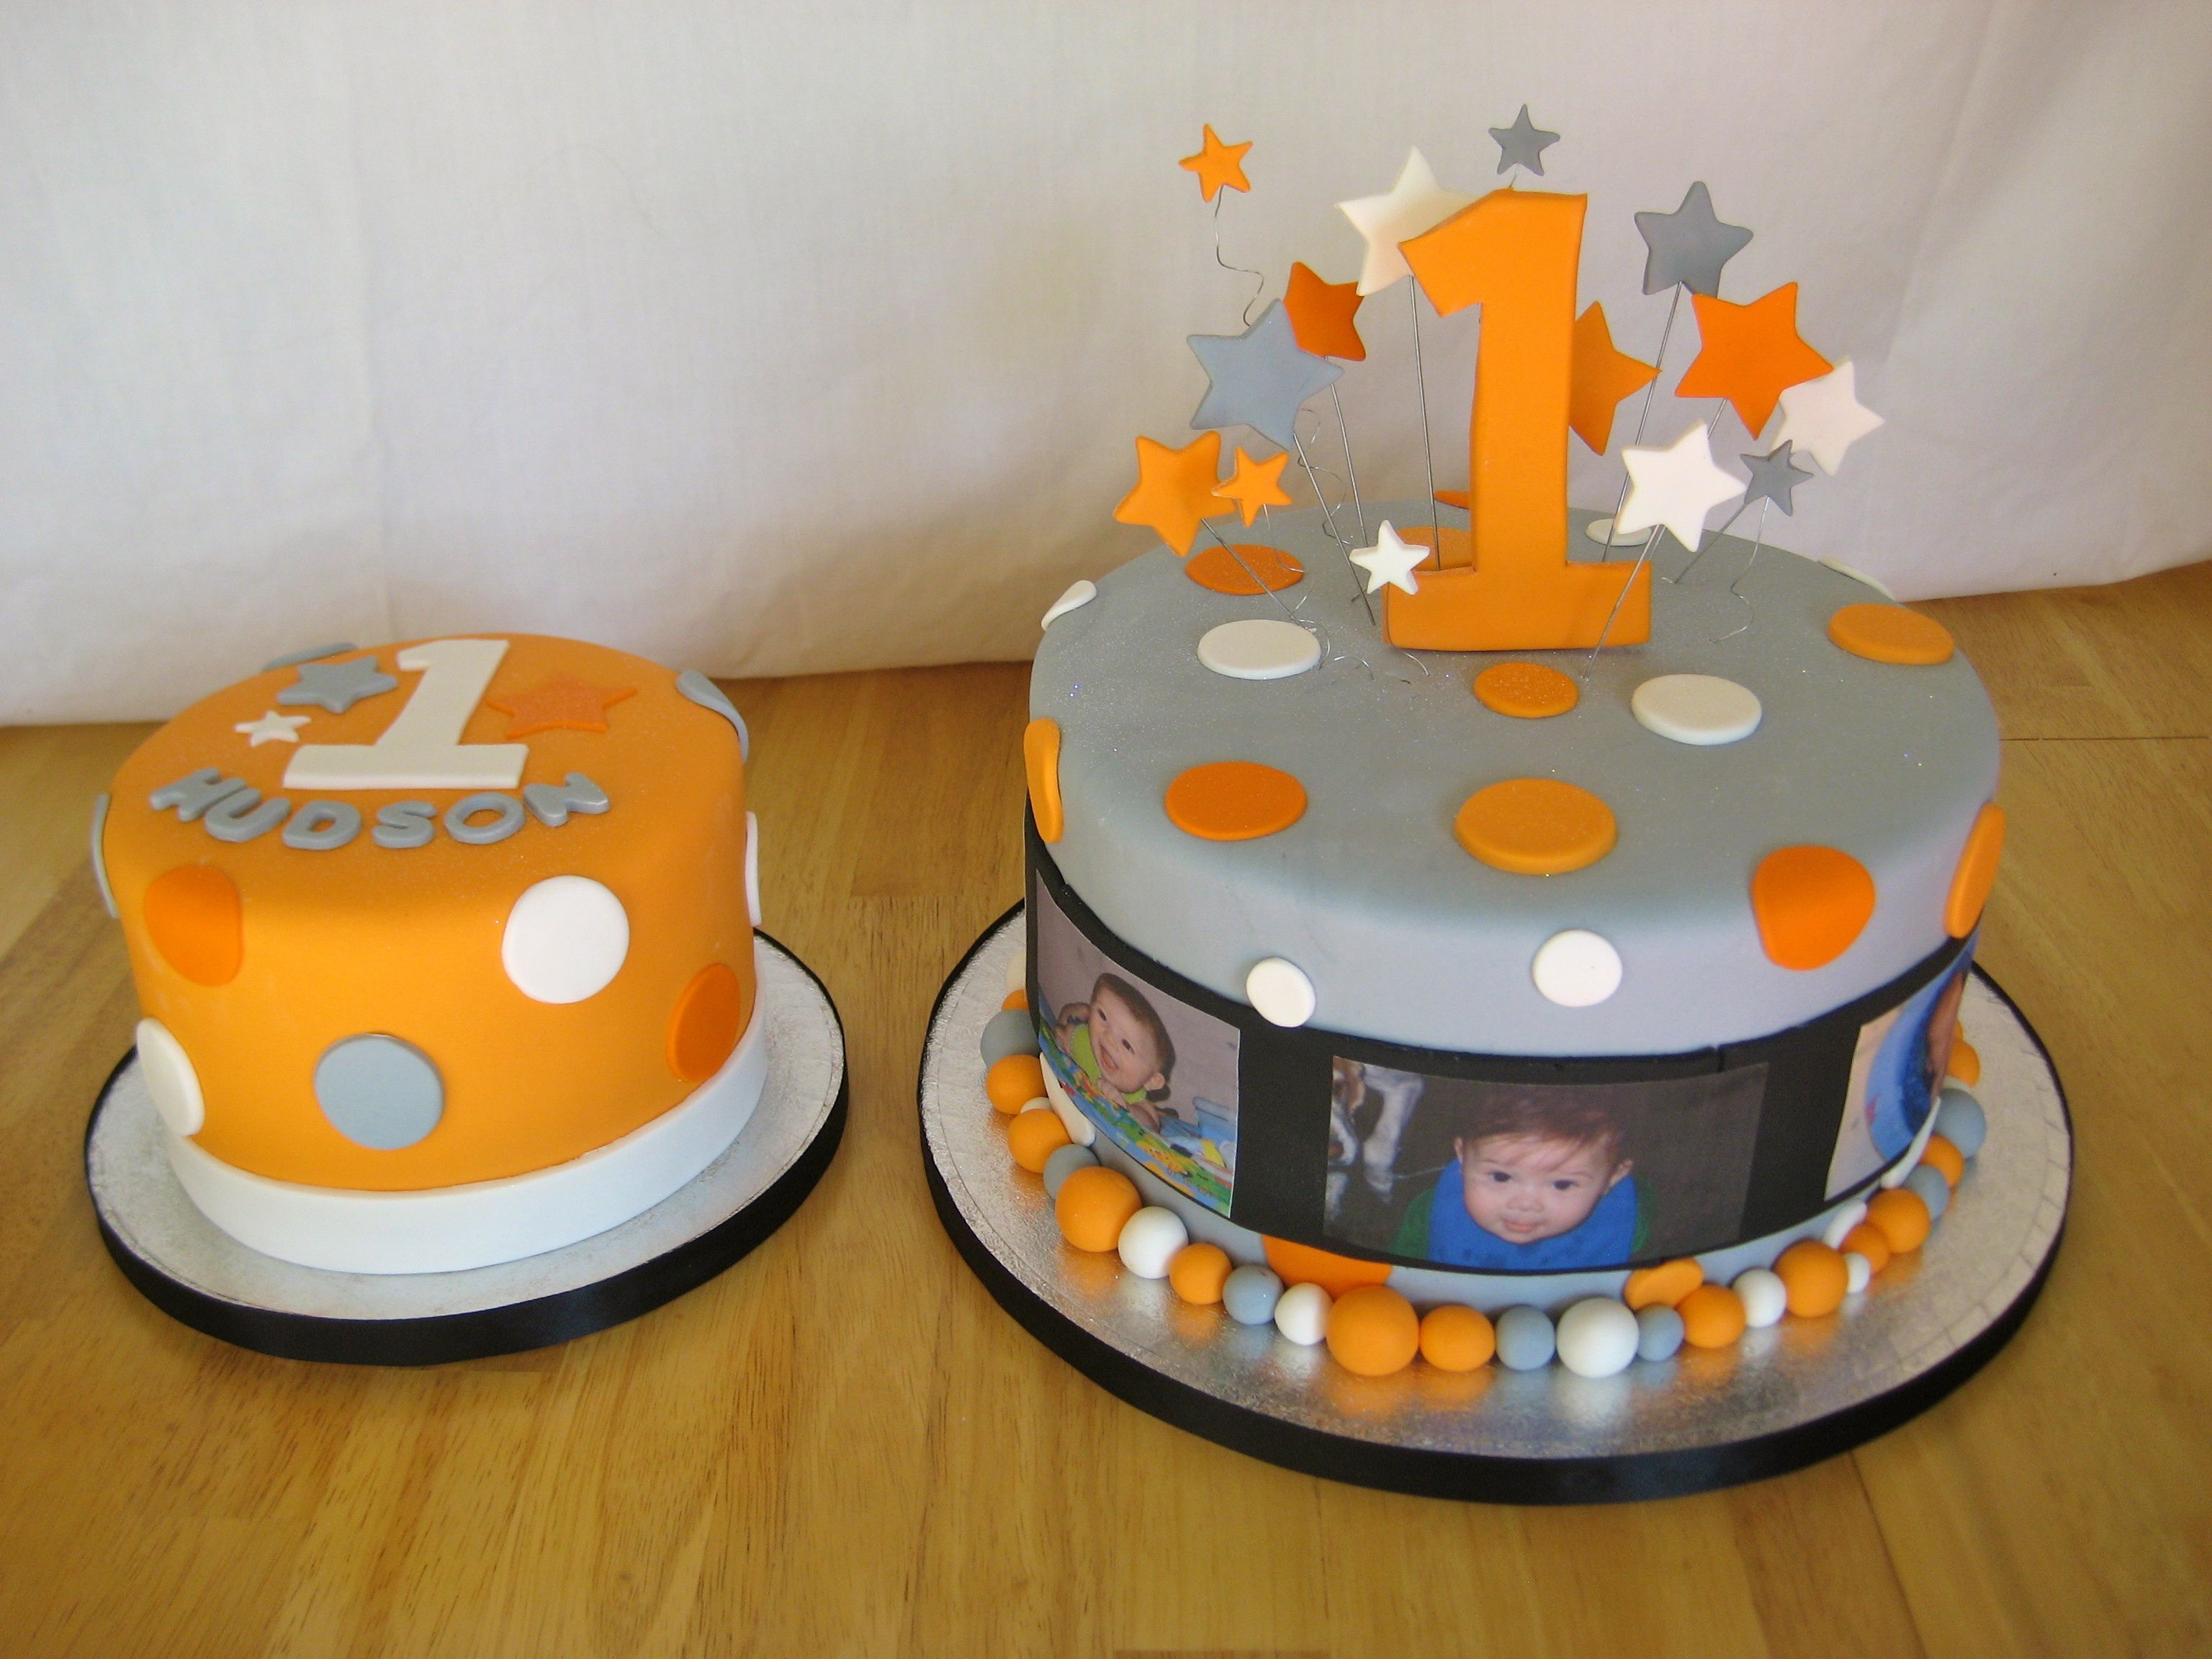 One Year Old in a FLASH cake Stars, Edible Images and